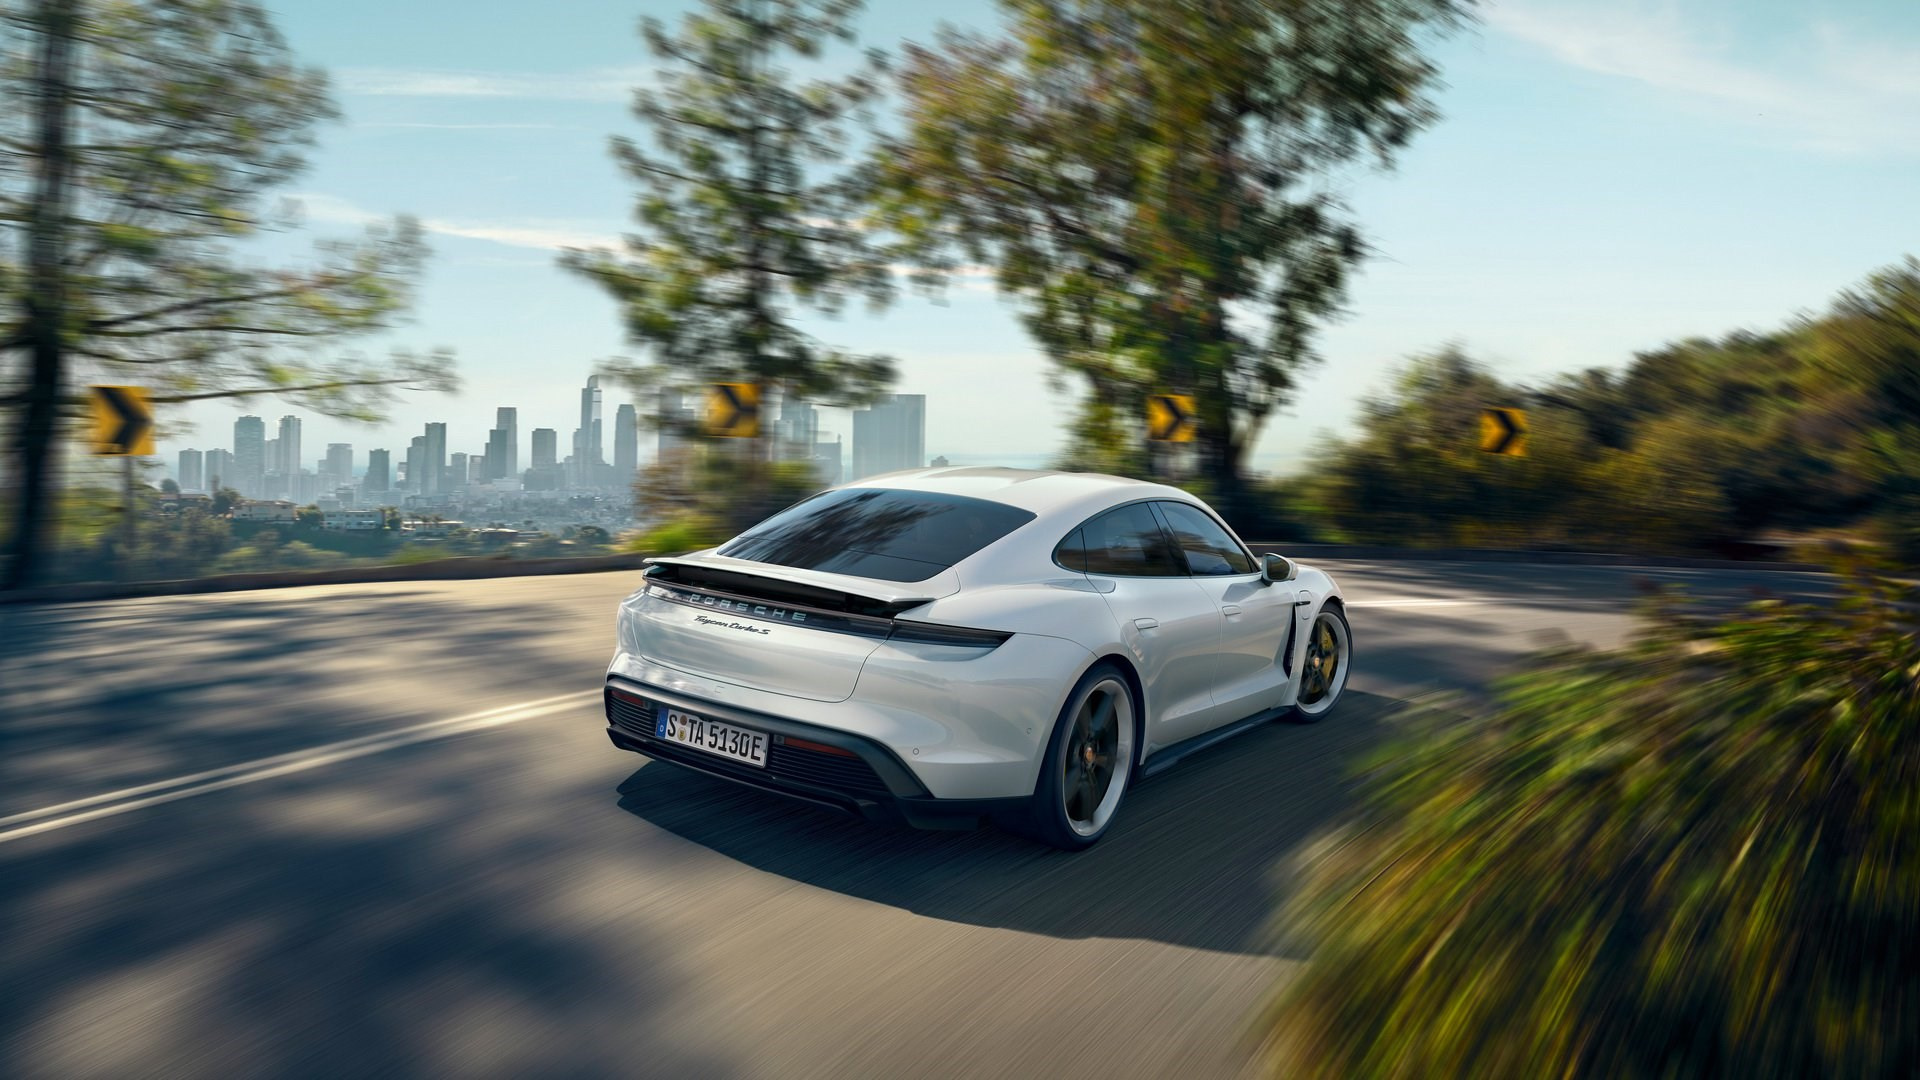 Revealed! New electric Porsche Taycan is a 750hp Tesla